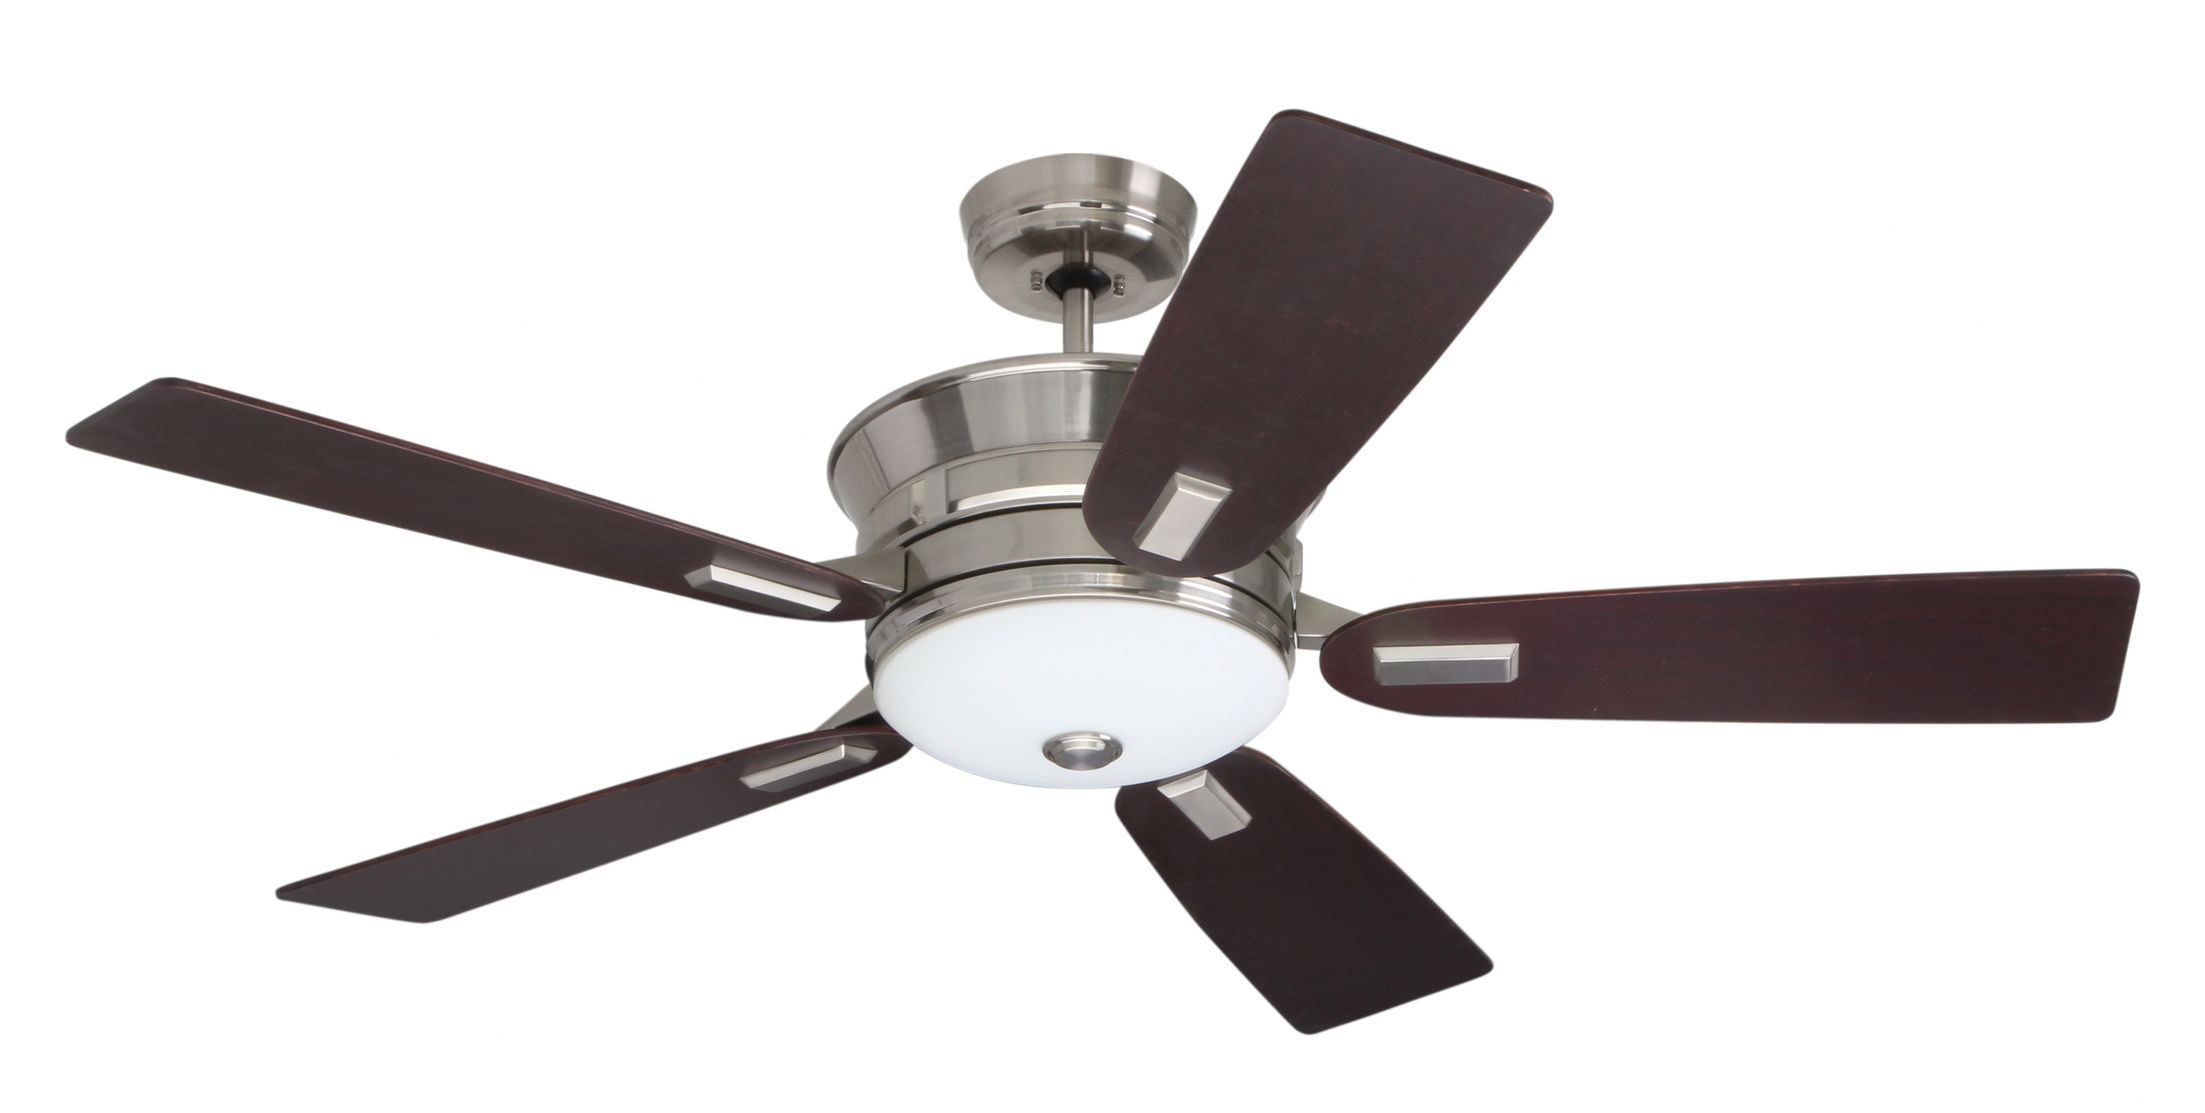 New Hunter Highbury ceiling fan with 3ft downrod installed by